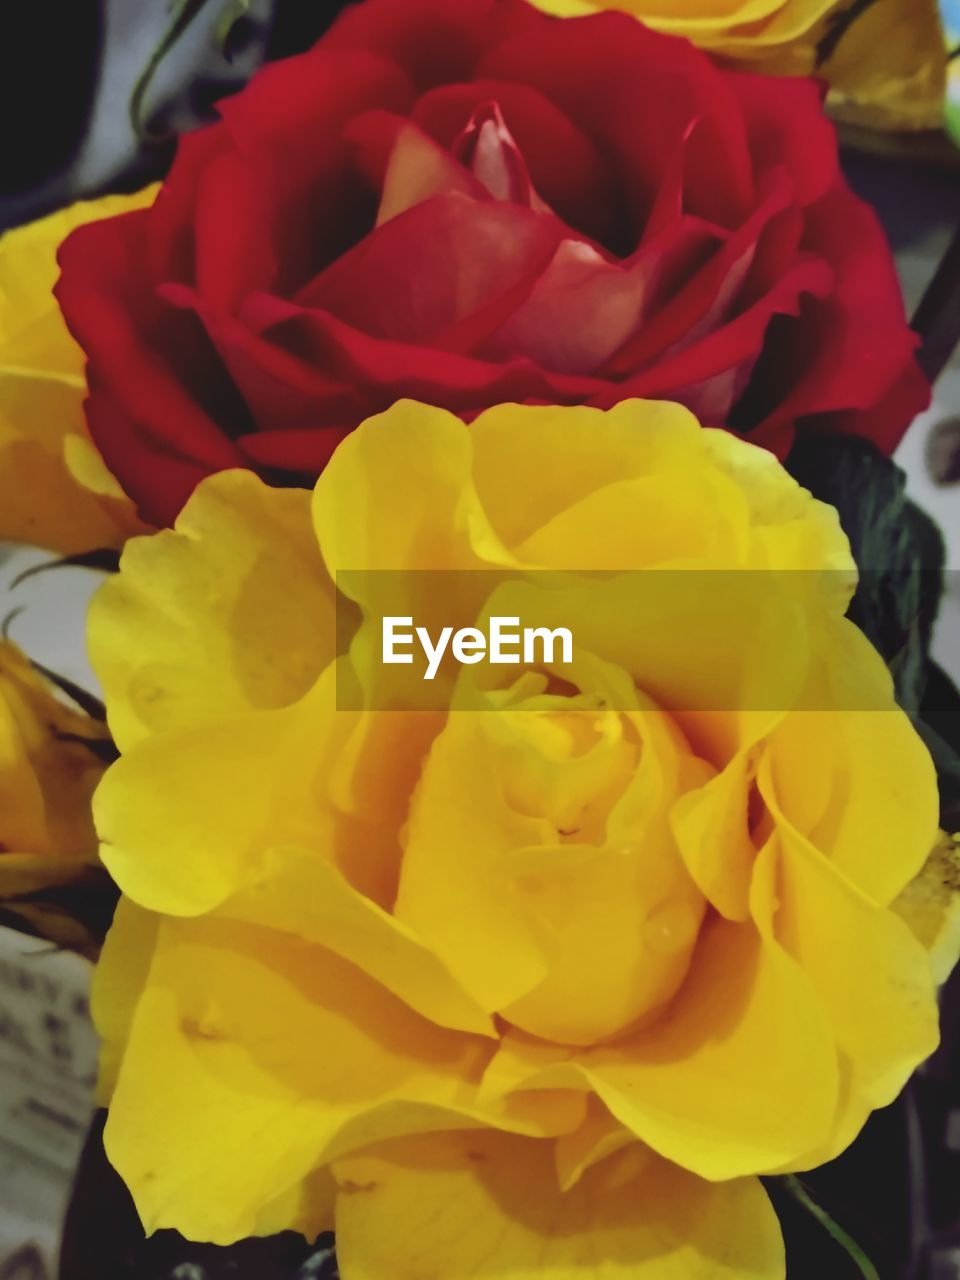 flower, beauty in nature, flowering plant, petal, plant, rose, inflorescence, freshness, flower head, vulnerability, rose - flower, close-up, fragility, yellow, no people, nature, growth, focus on foreground, red, outdoors, bouquet, flower arrangement